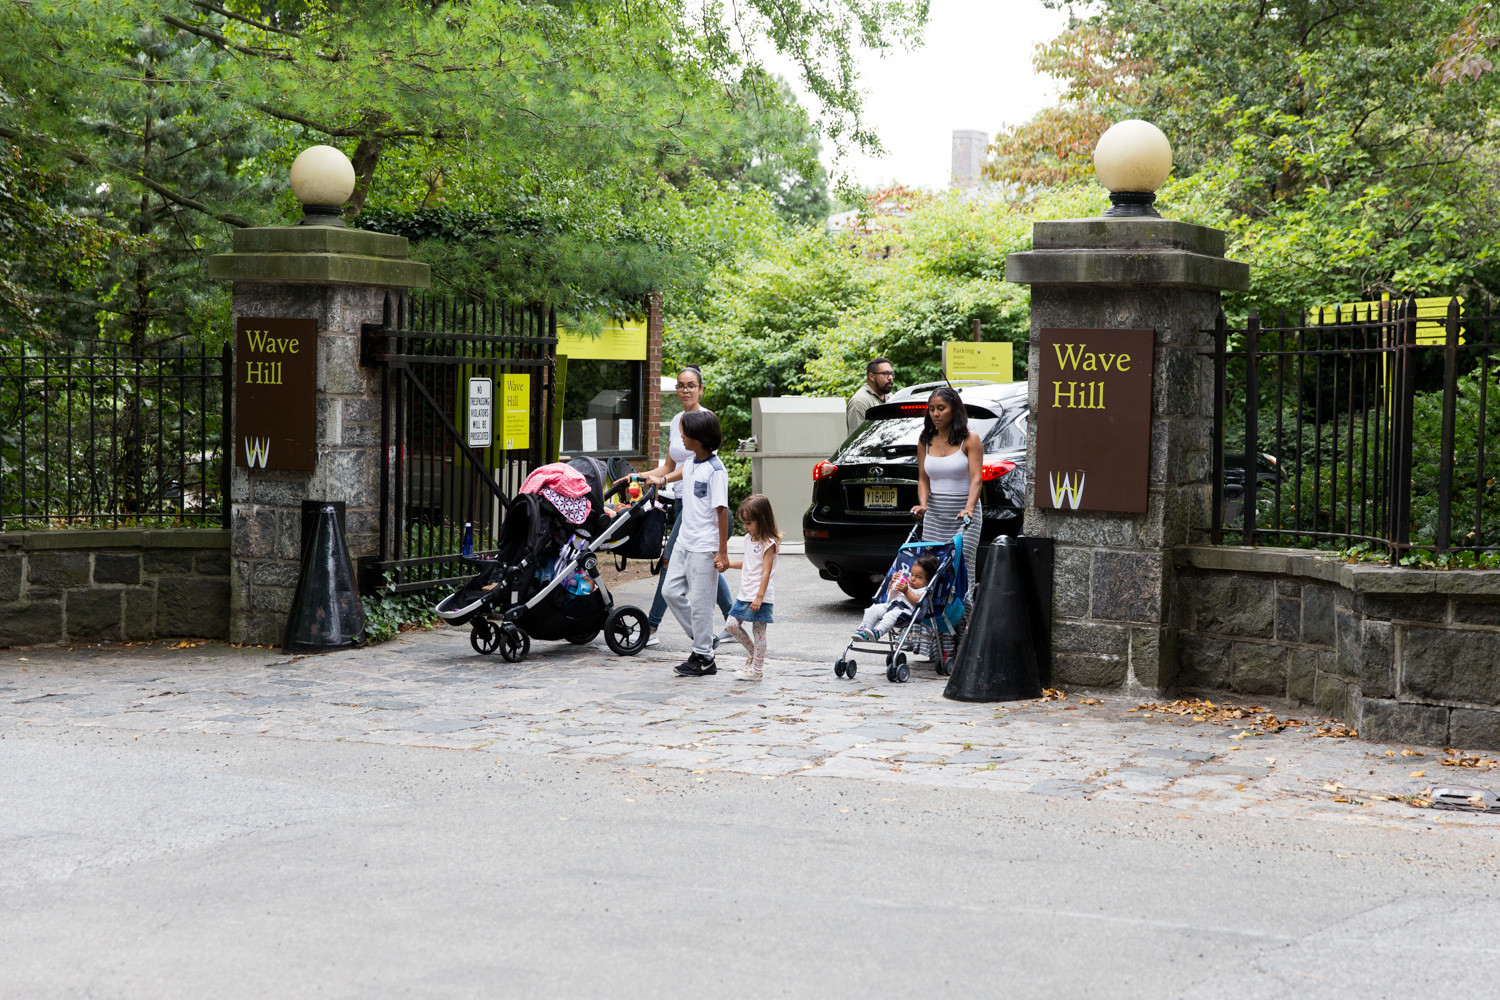 A family leaves Wave Hill as a car enters through the main gate last summer. The entrance, located at West 249th Street and Independence Avenue, will soon be restricted only to vehicles as a new pedestrian entrance is being designed for the south side of the garden.